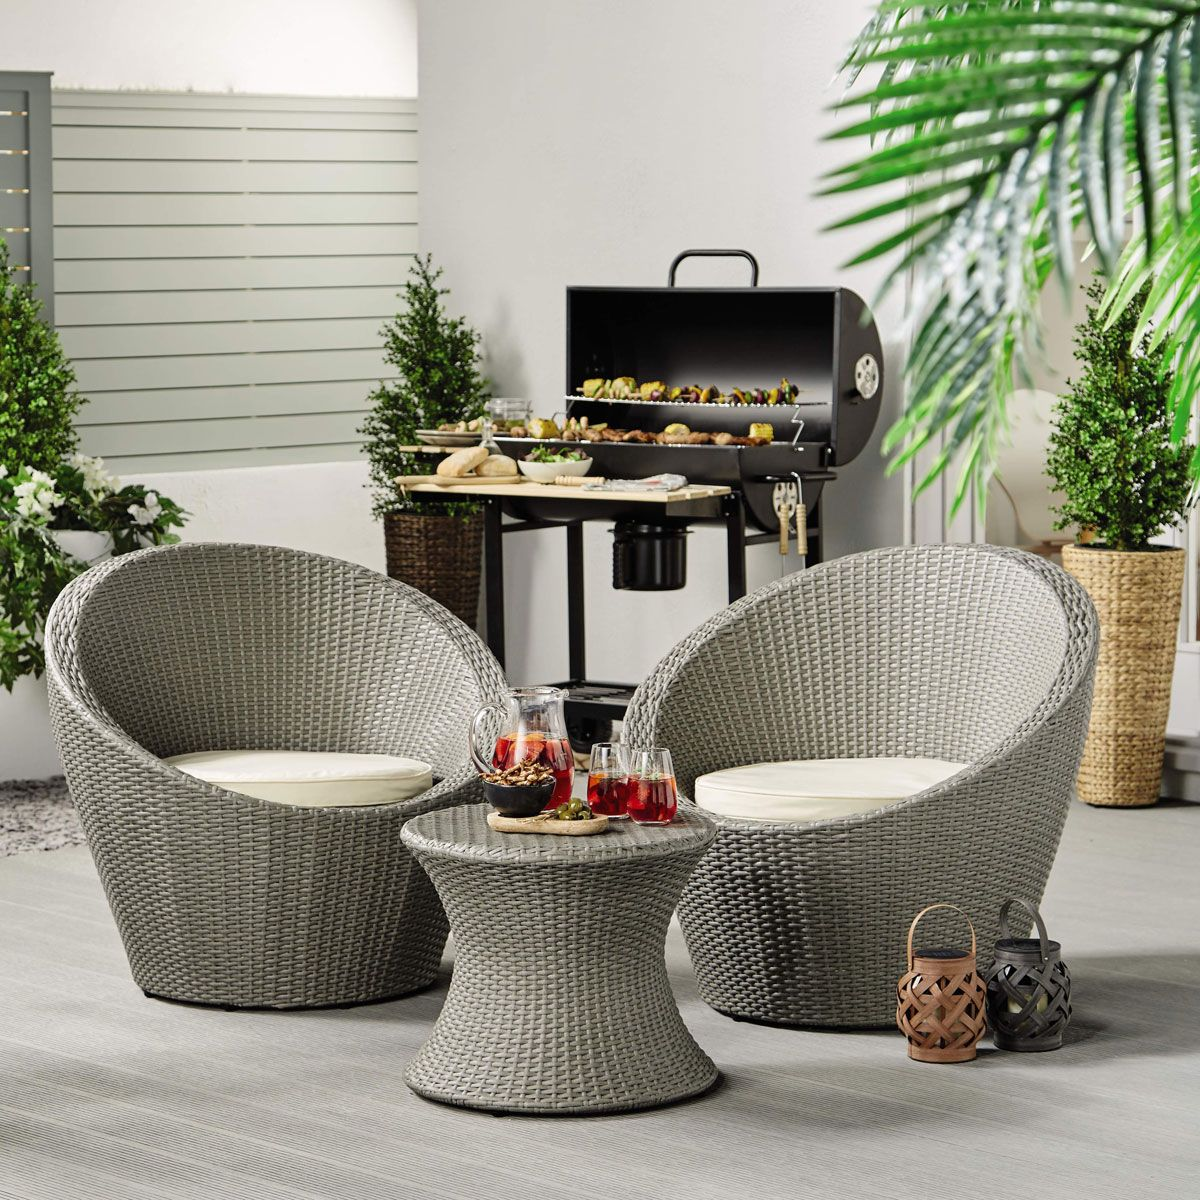 Outdoor Teppich Balkon Aldi Aldi Specialbuys To Add To Your Shopping List This Week Gardens